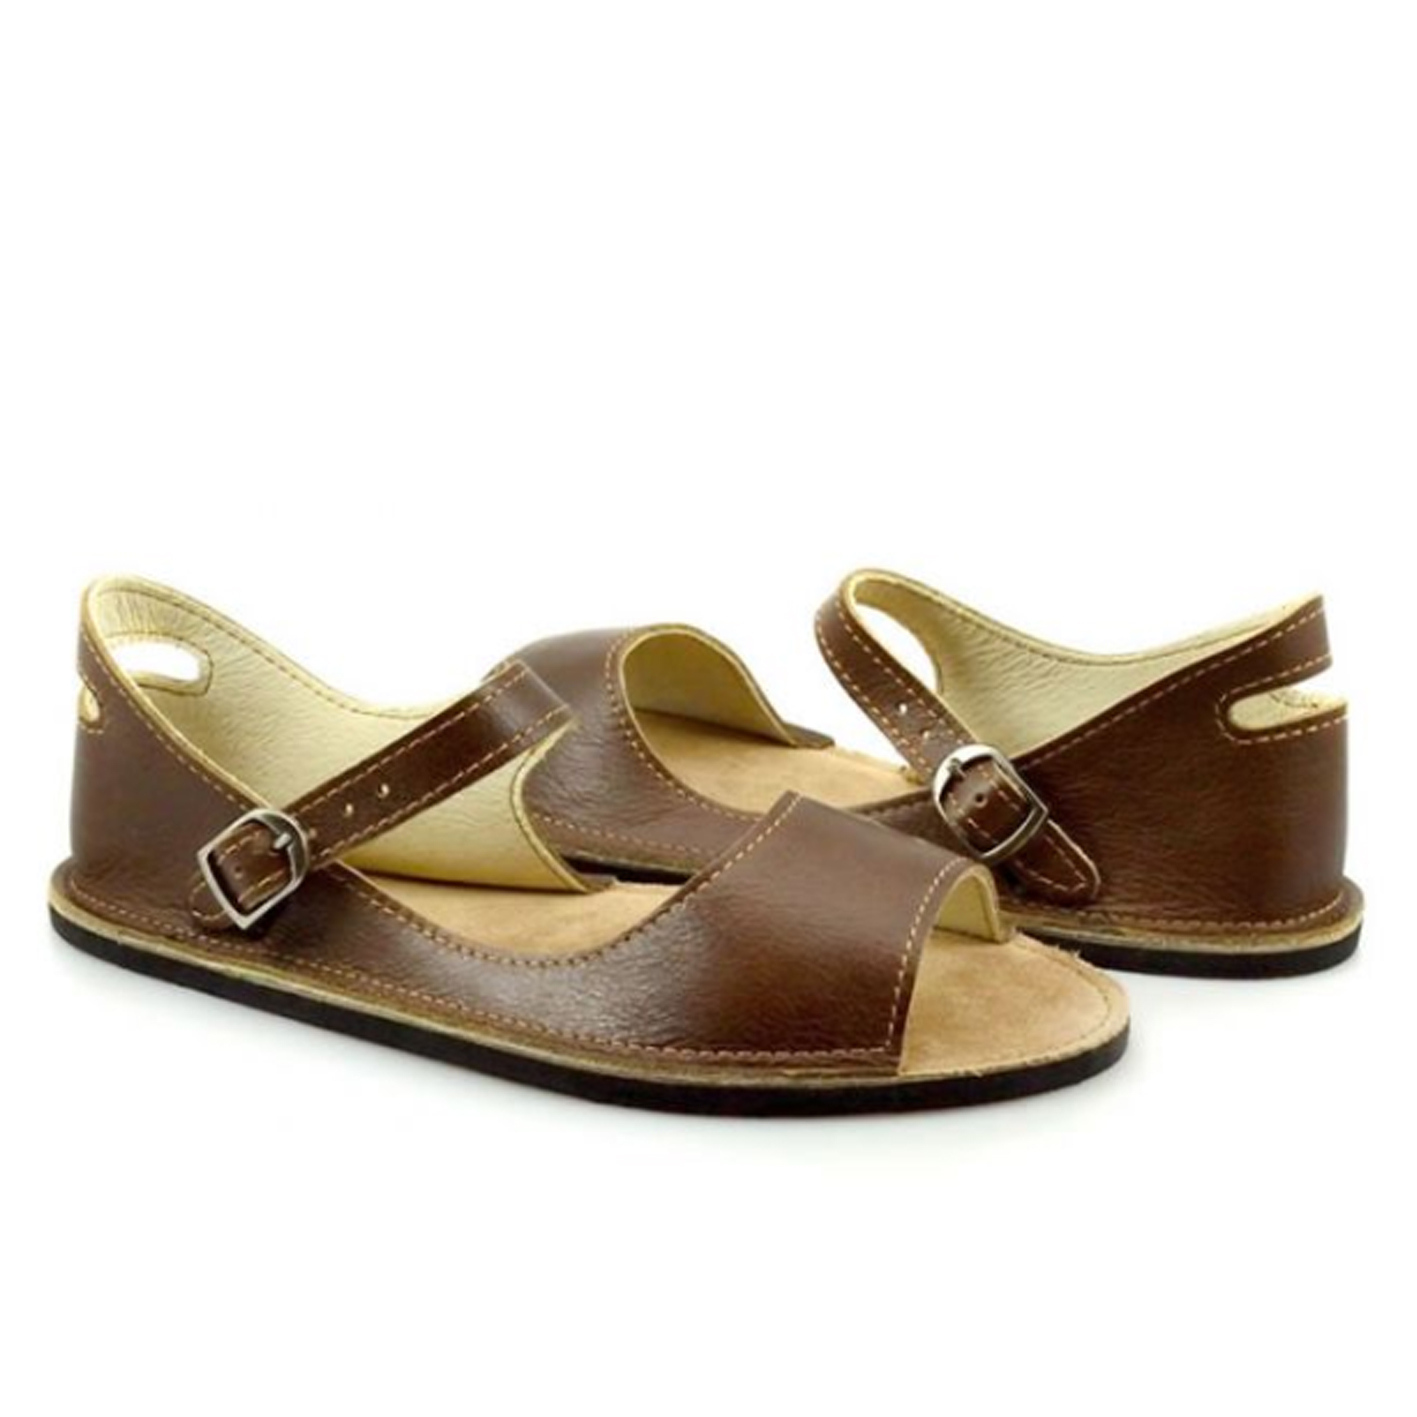 Adult Solstice Sandal - Minimalist shoes that look good post by Mama Natural